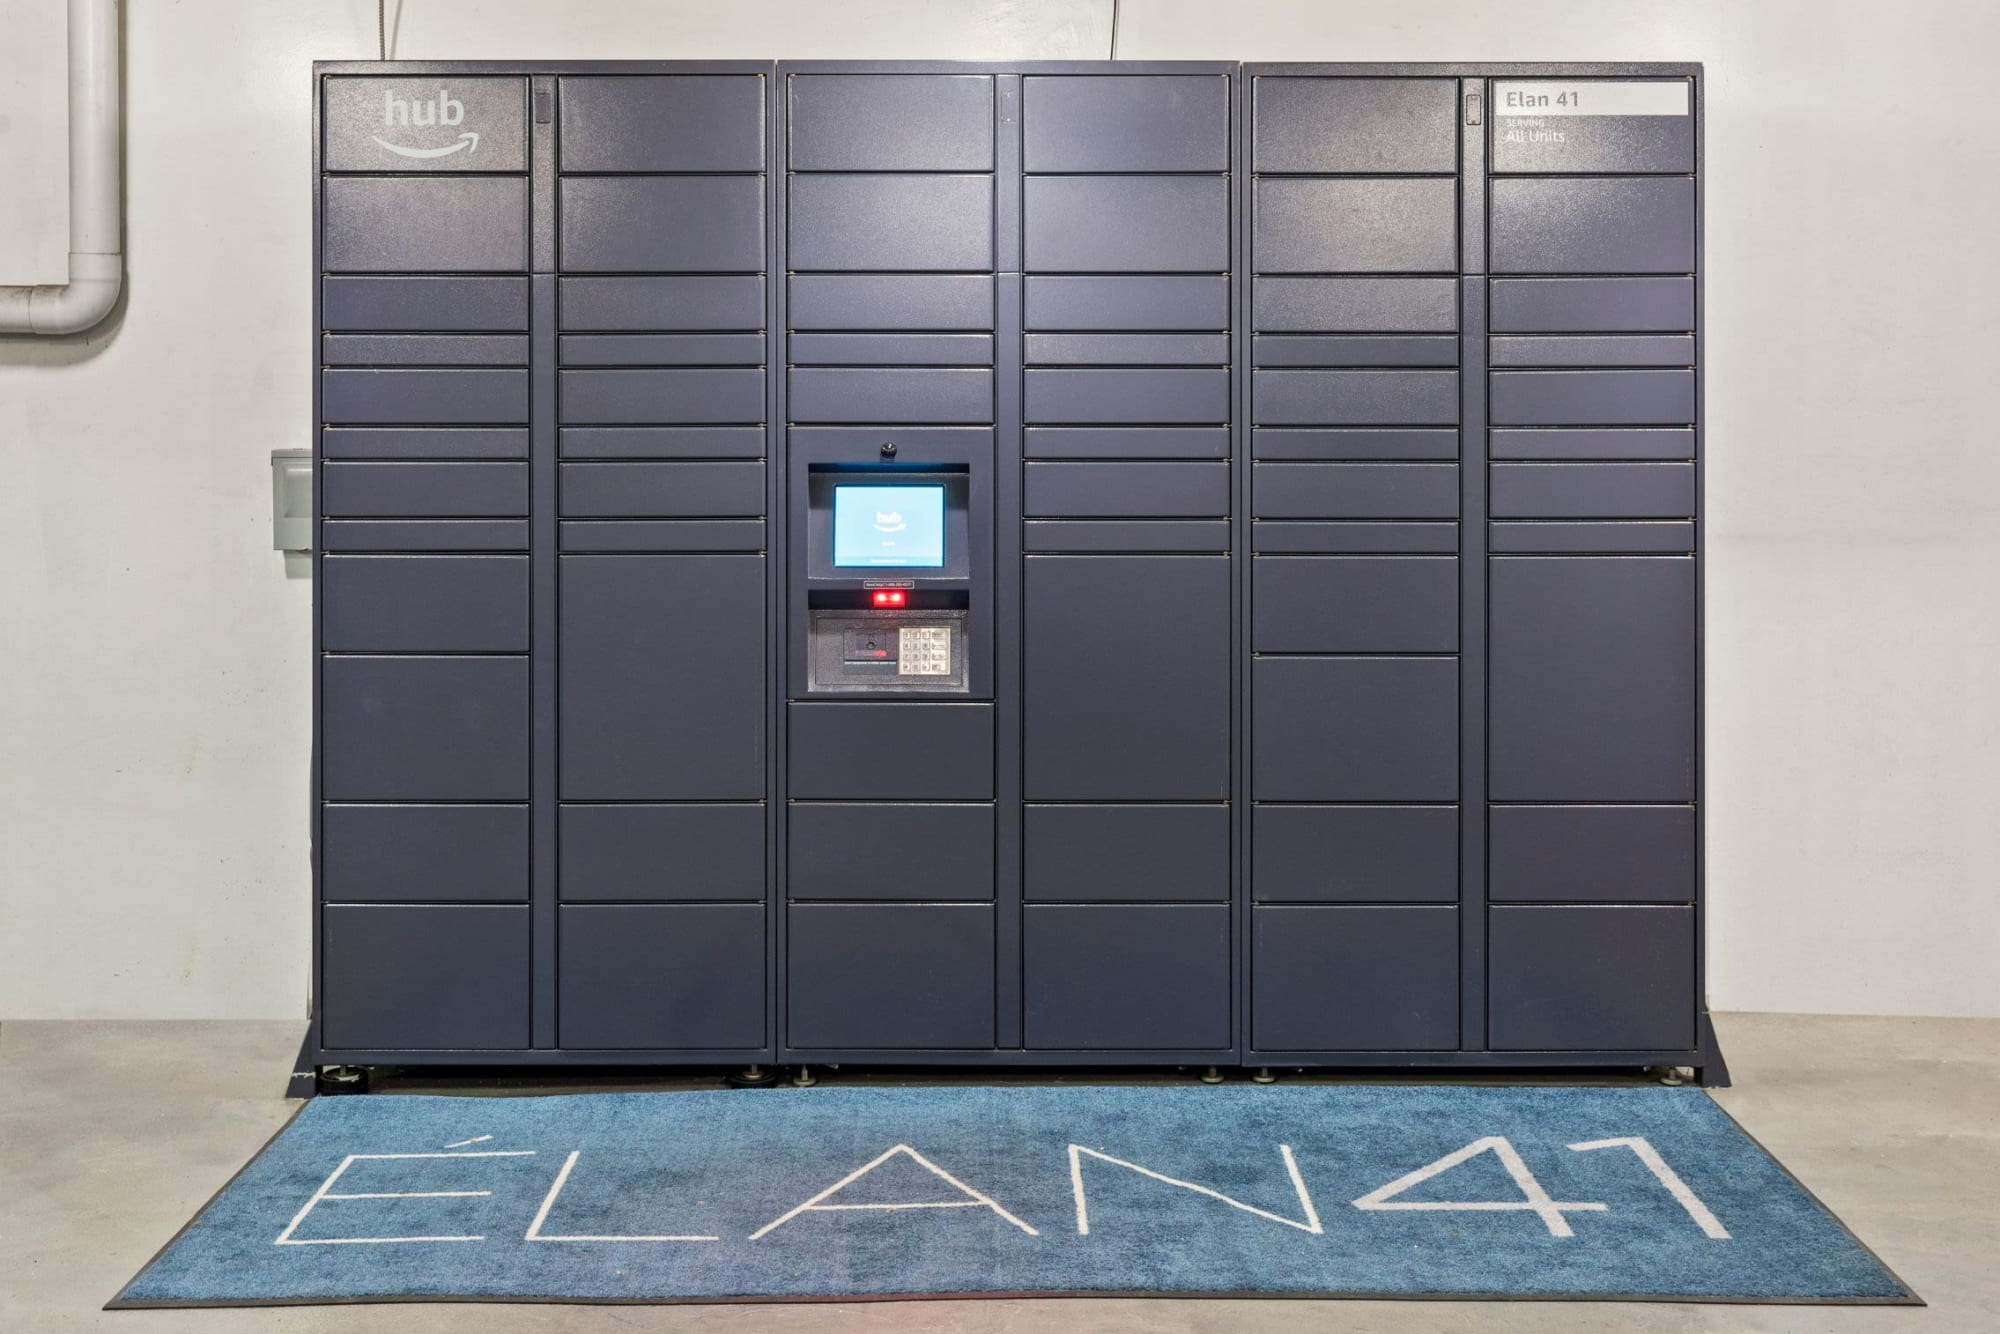 The convenient, 24-hour package lockers at Elan 41 Apartments in Seattle, Washington